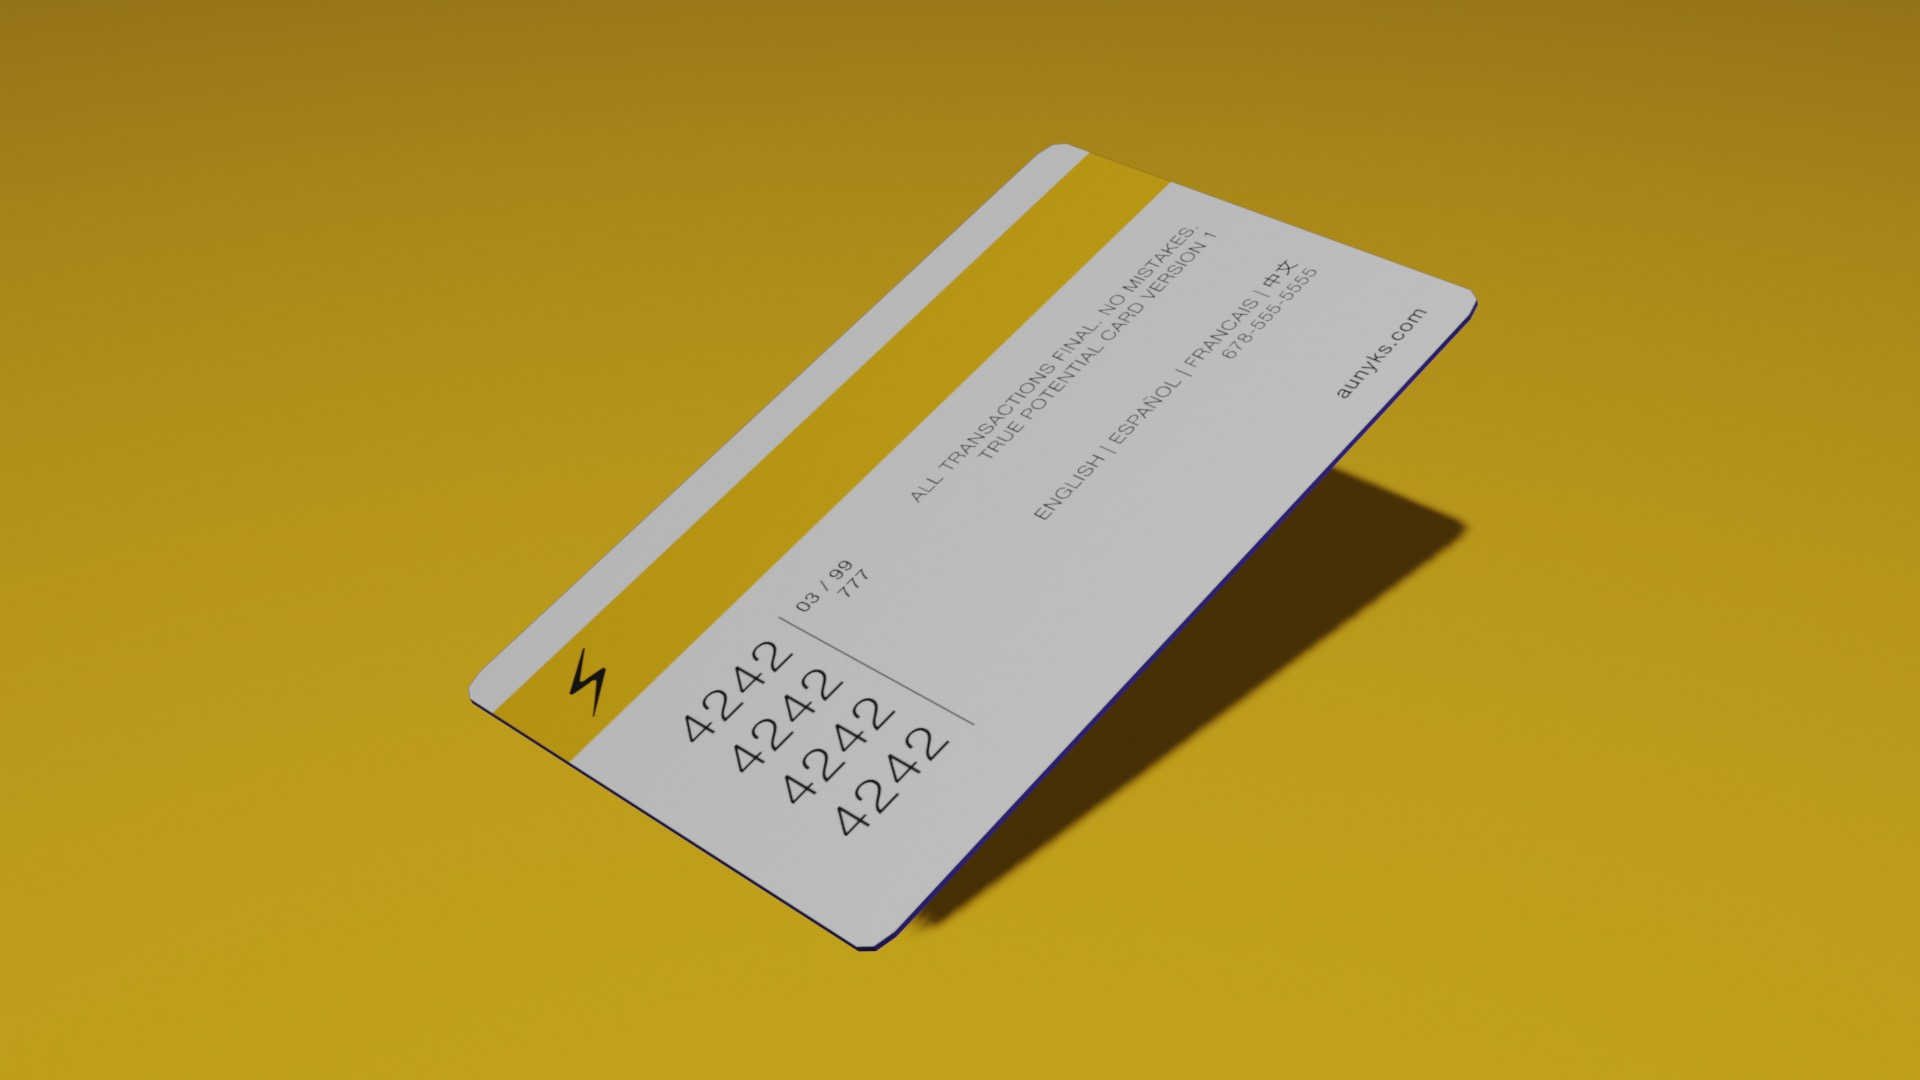 The back of the card, but the card is oriented with the right side up higher than the left side for visual appeal.